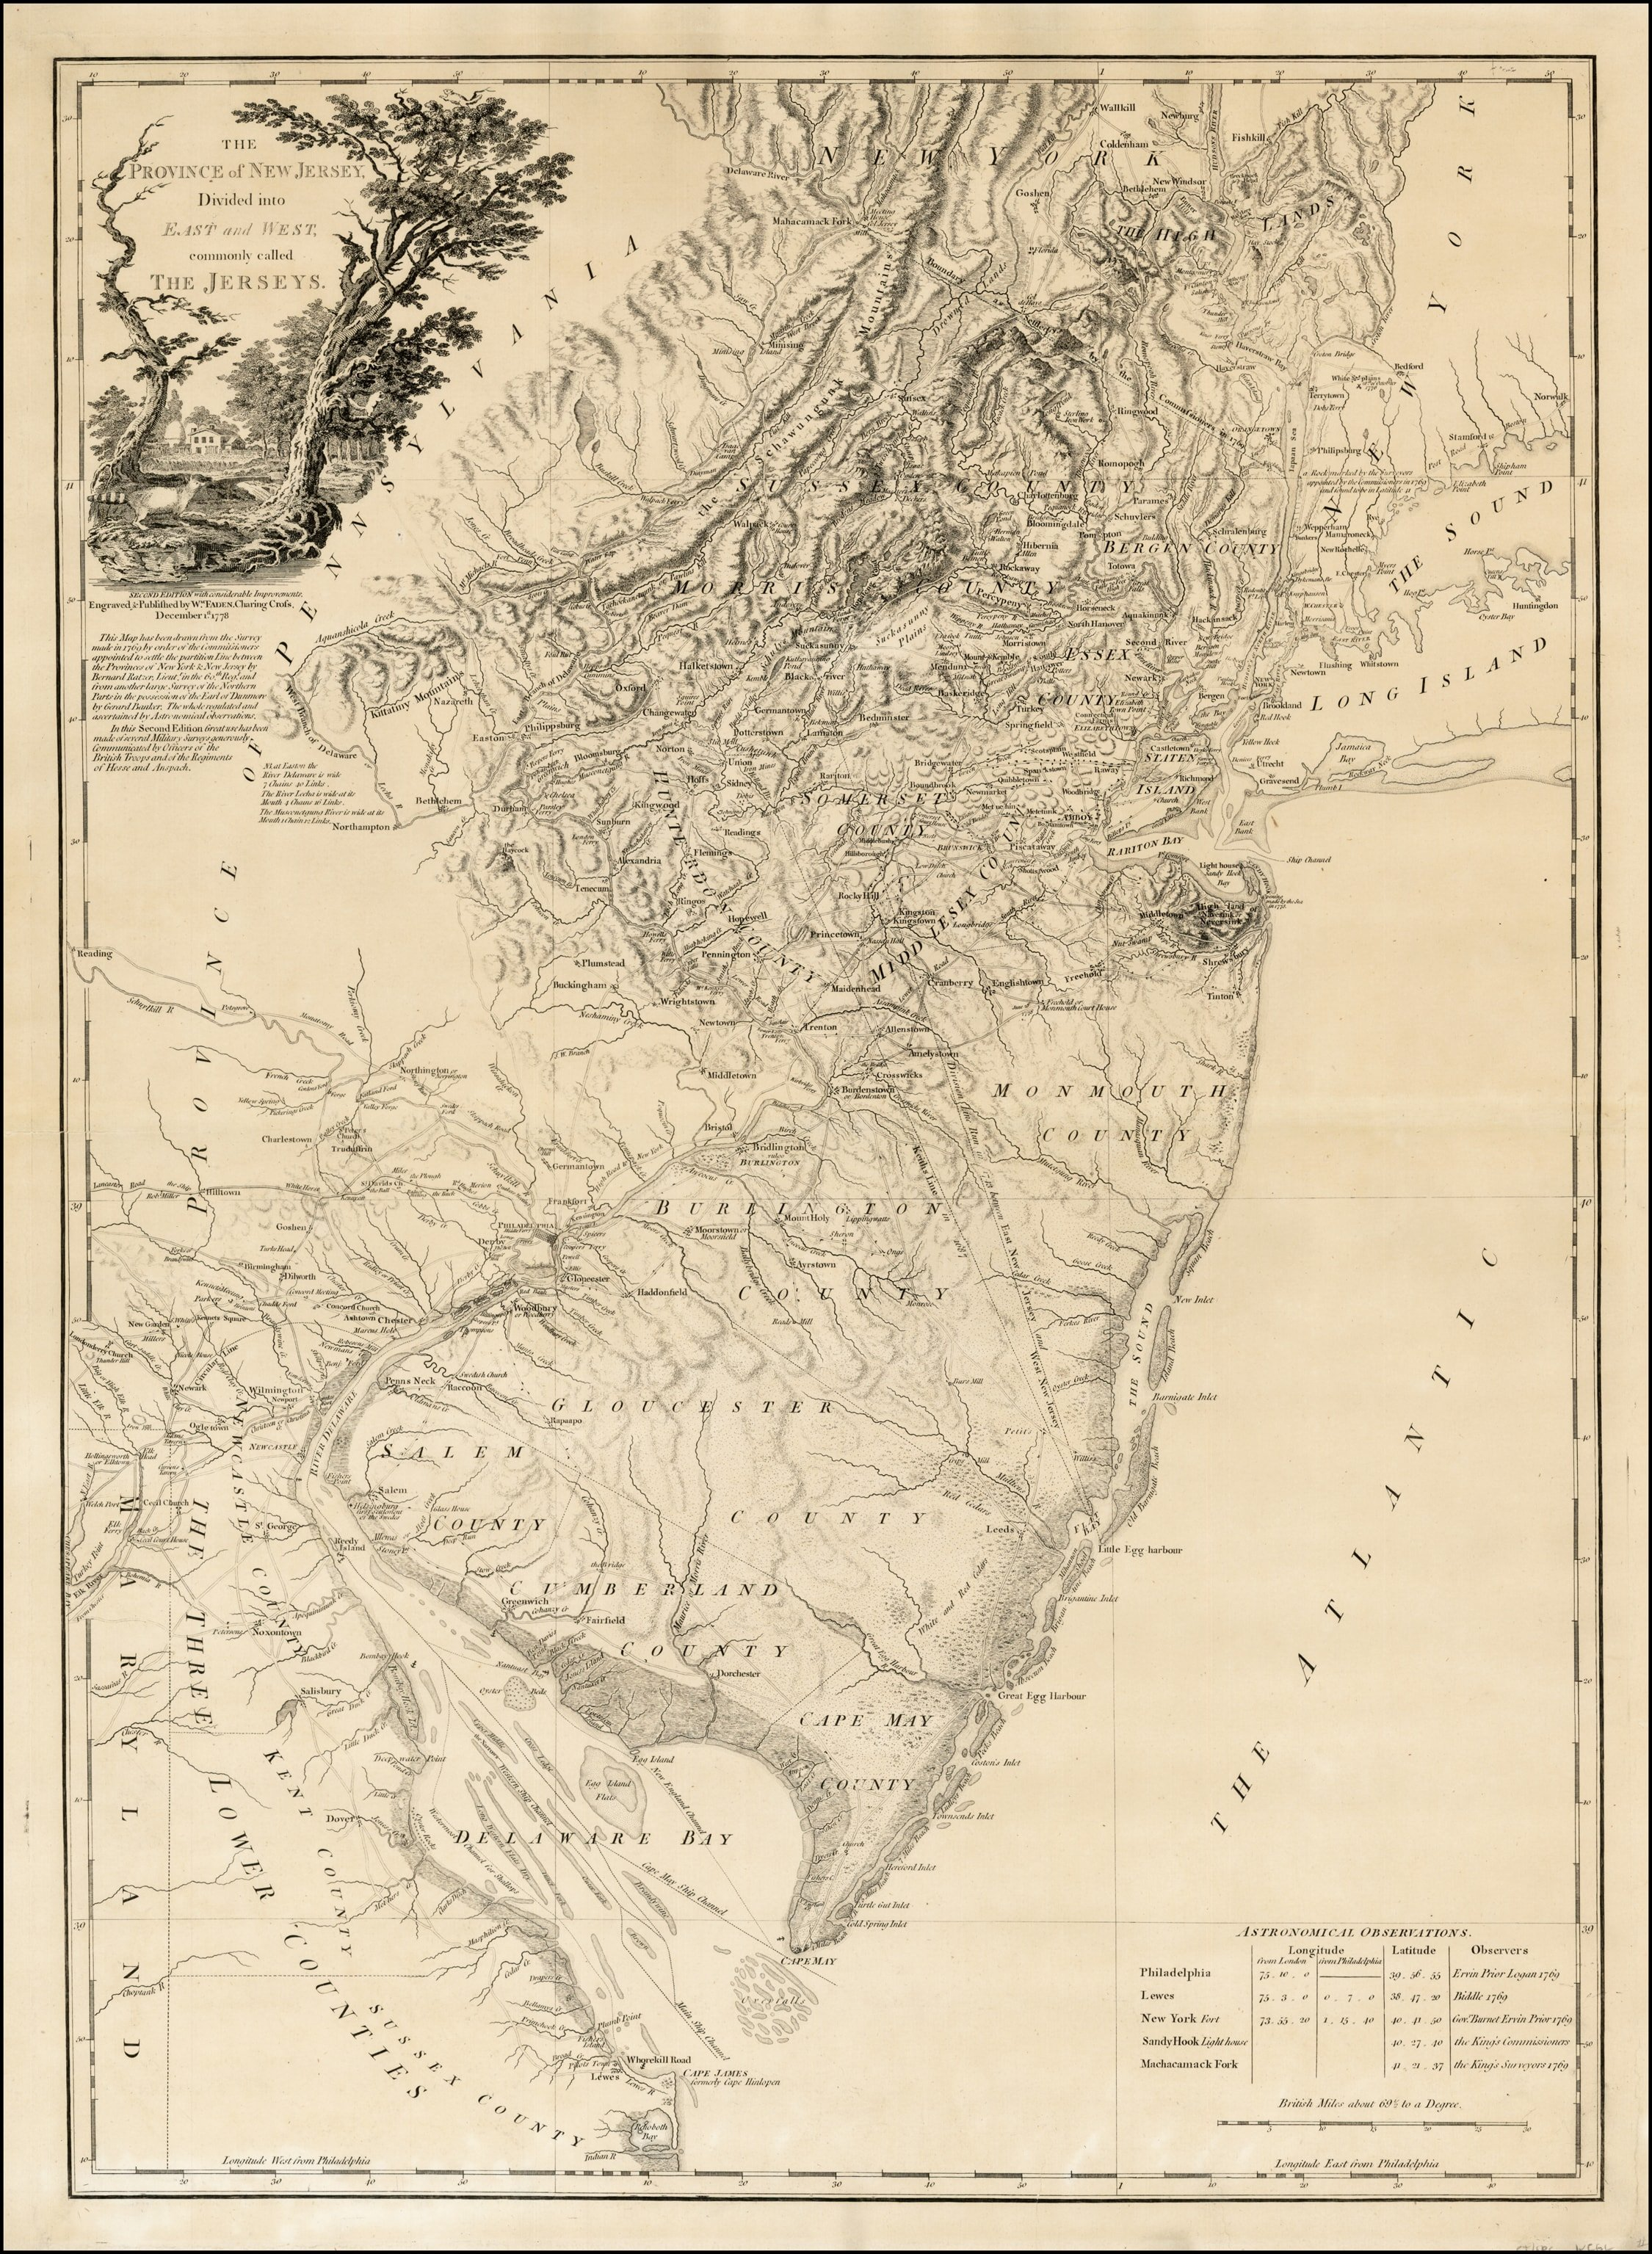 The Finest 18th-century Map Of New Jersey